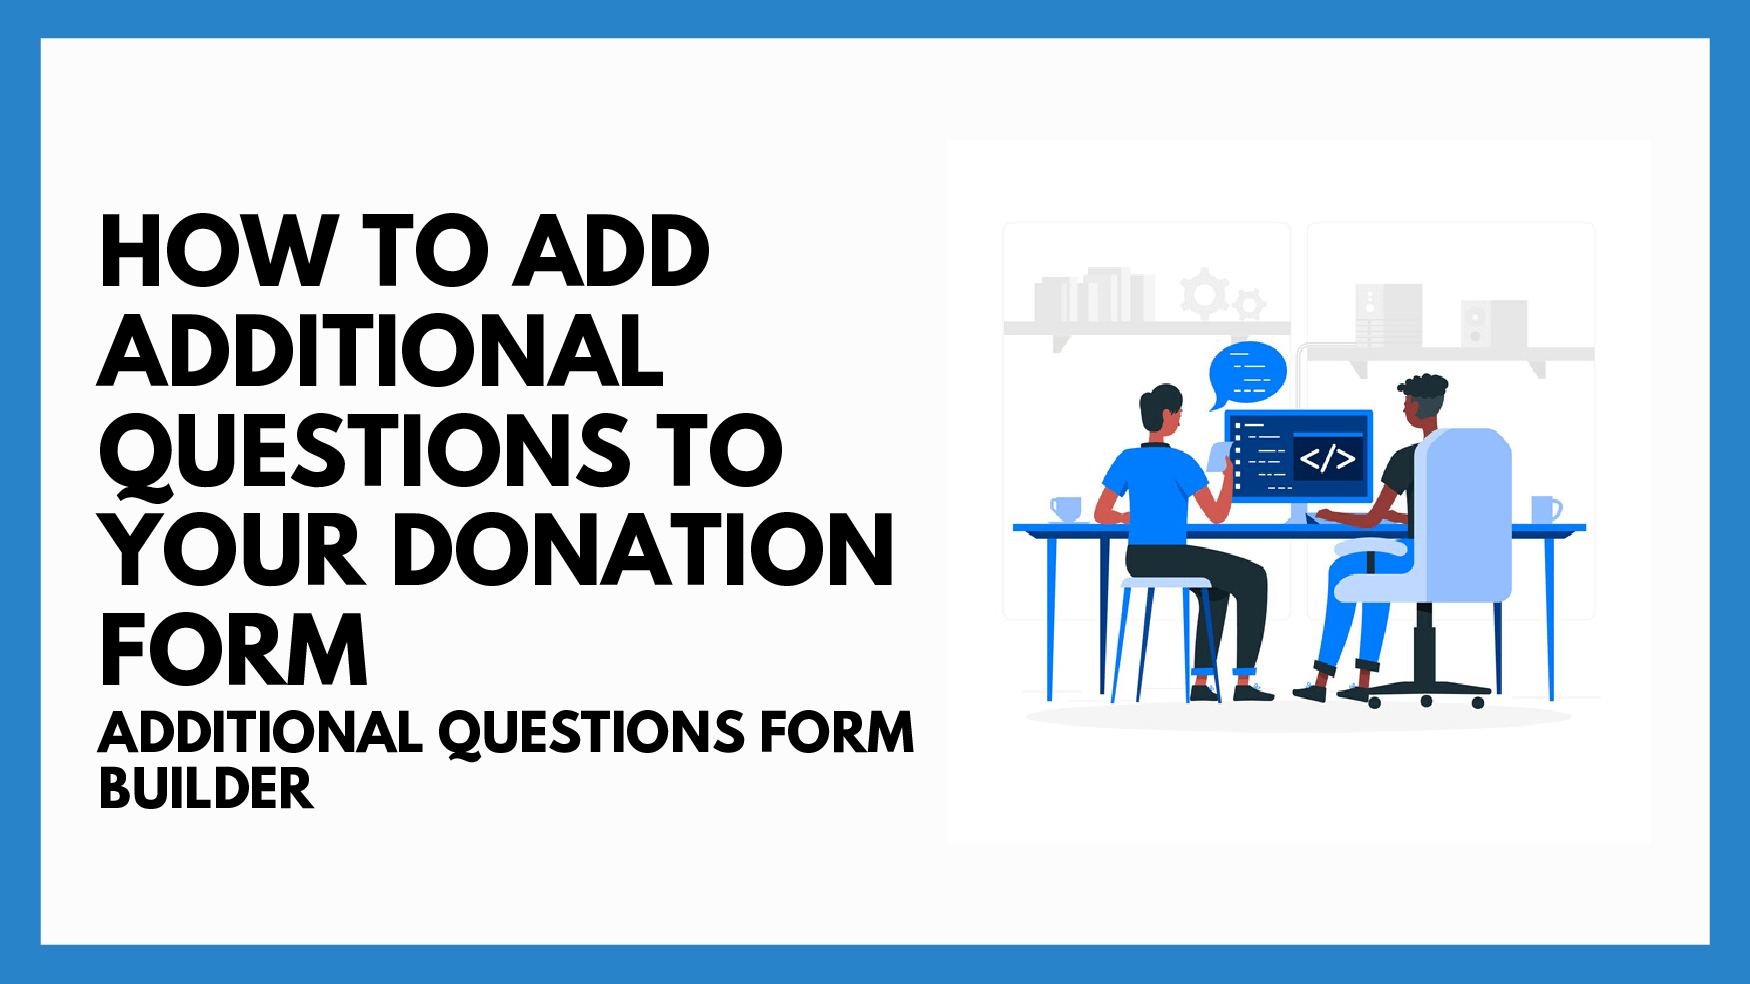 How To Add Additional Questions To Your Donation Form- Additional Questions Form Builder